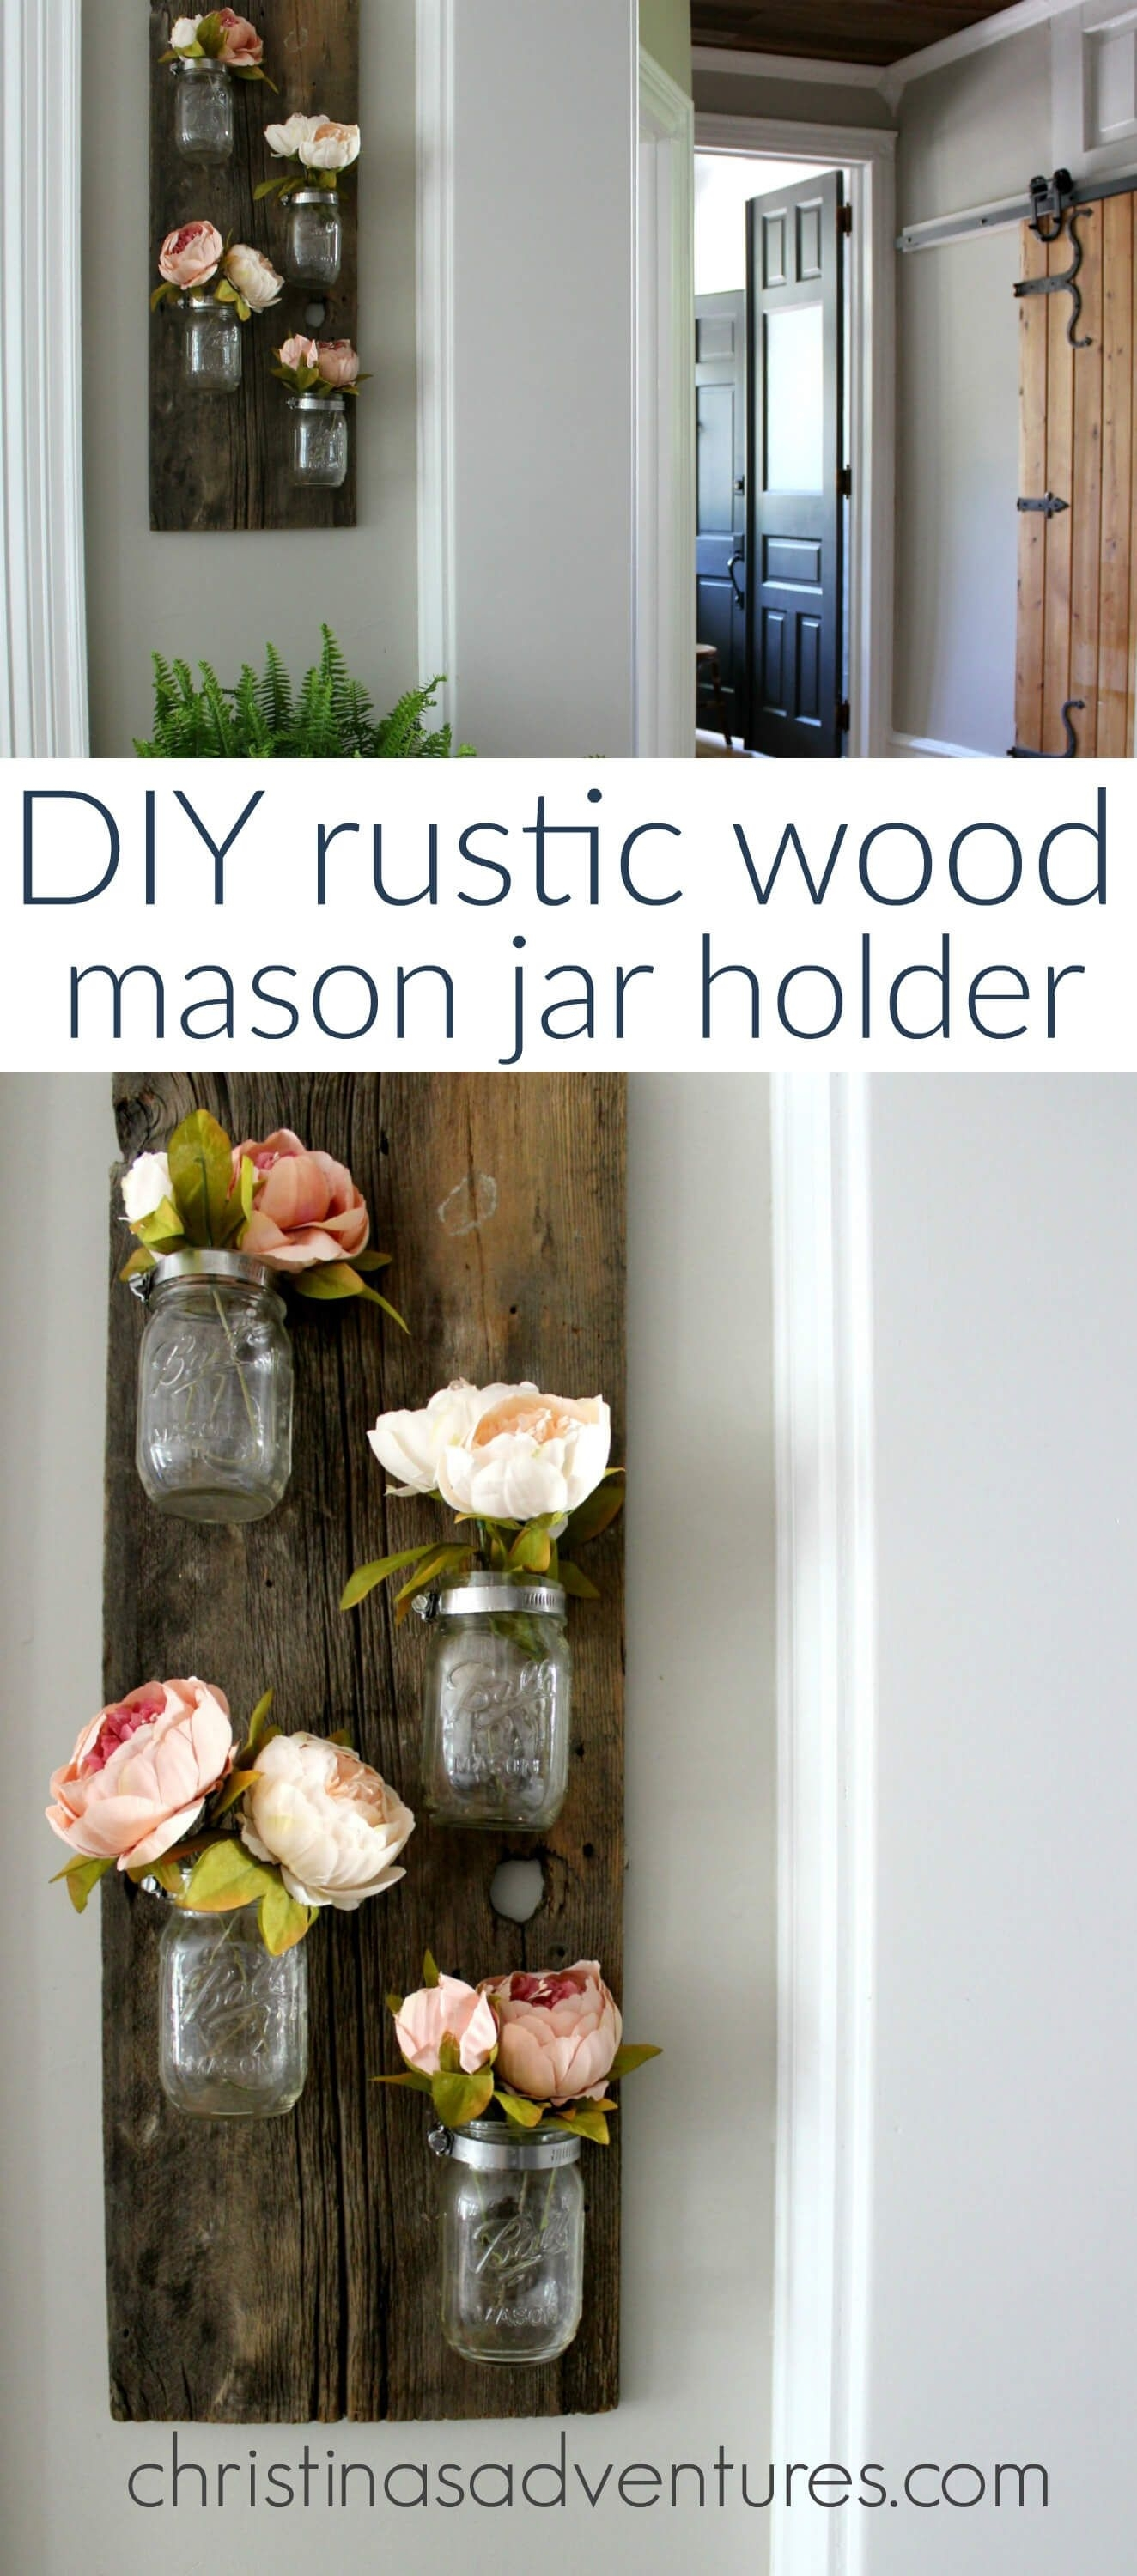 24 Enchanting Mason Jar Wall Decor Ideas To Brighten Your Walls Within Most Current Mason Jar Wall Art (Gallery 10 of 20)